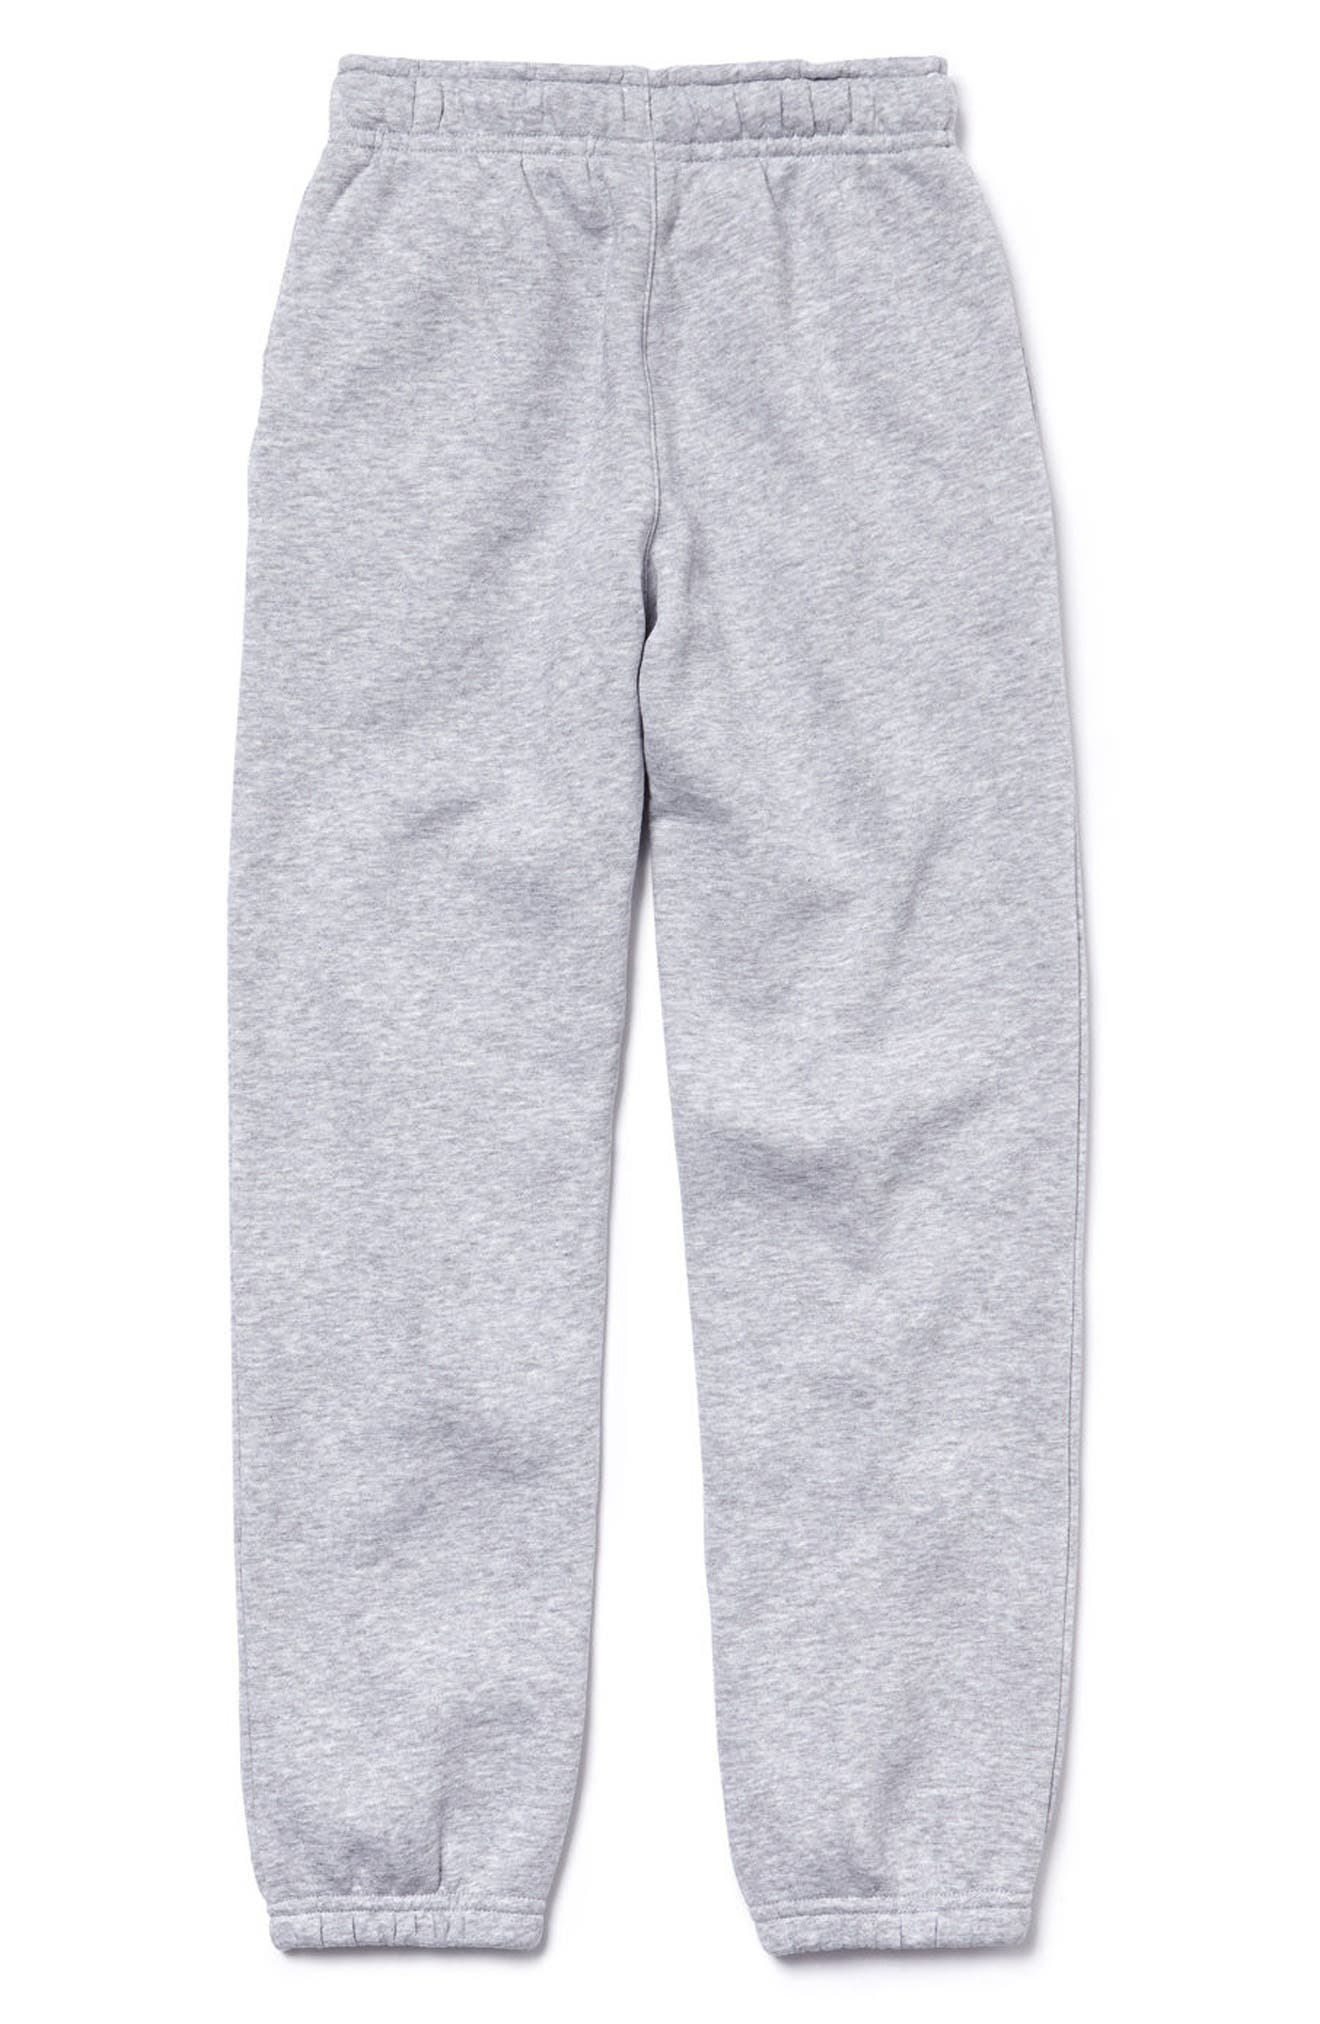 Sport Sweatpants,                             Alternate thumbnail 2, color,                             Silver Grey Chine